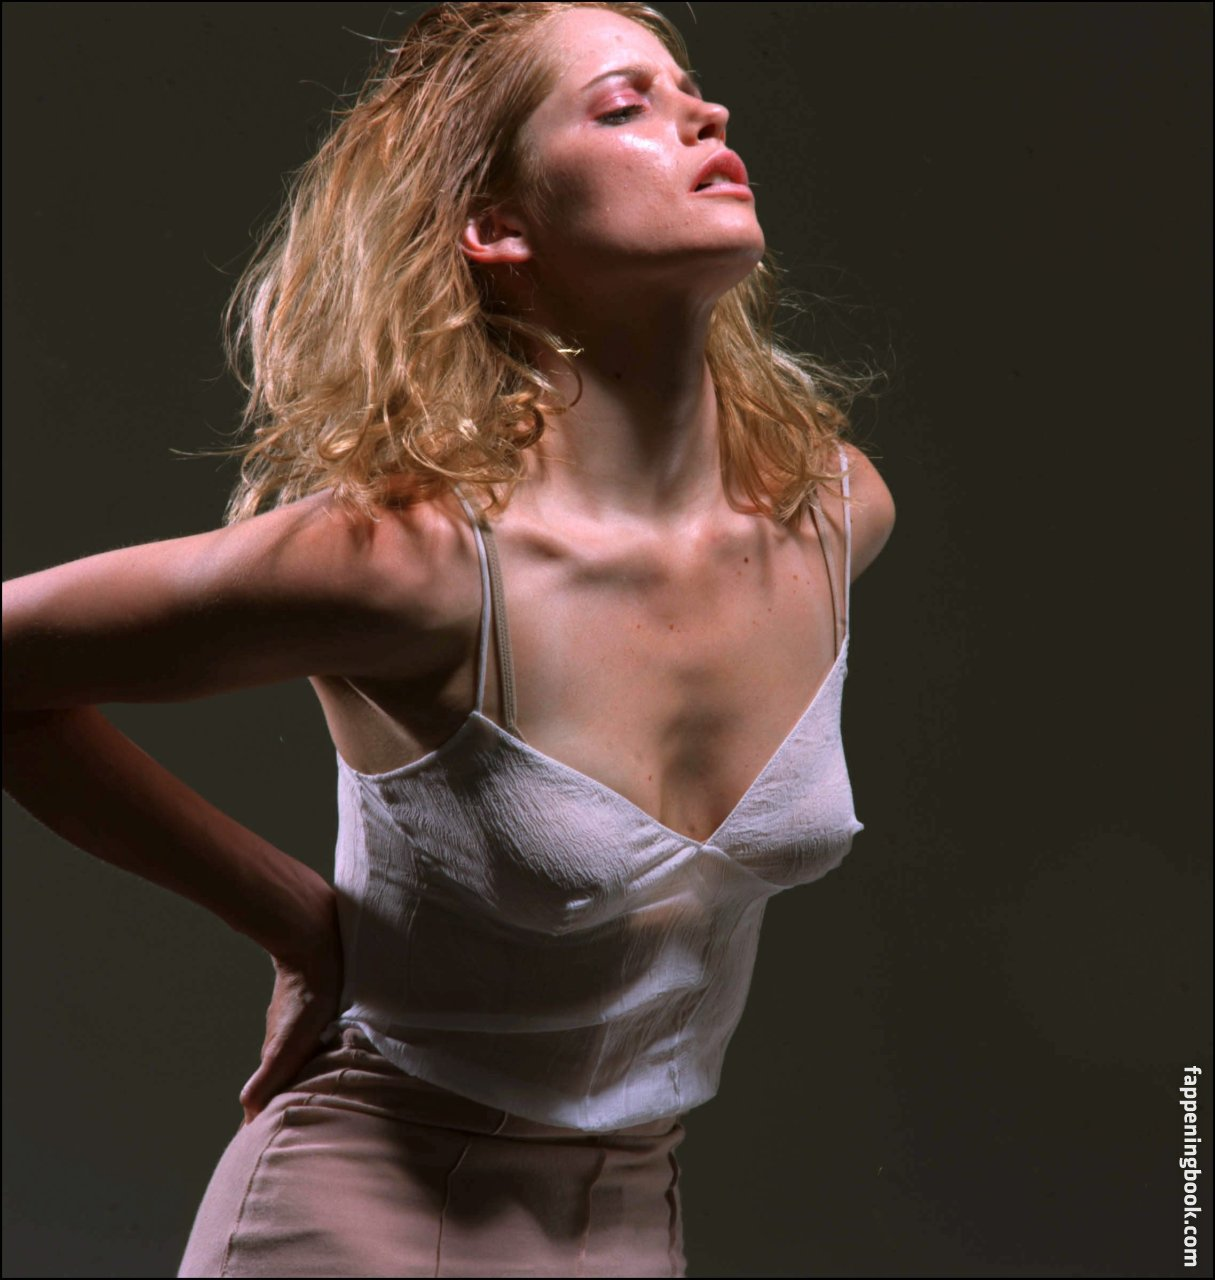 Sienna guillory nude photos